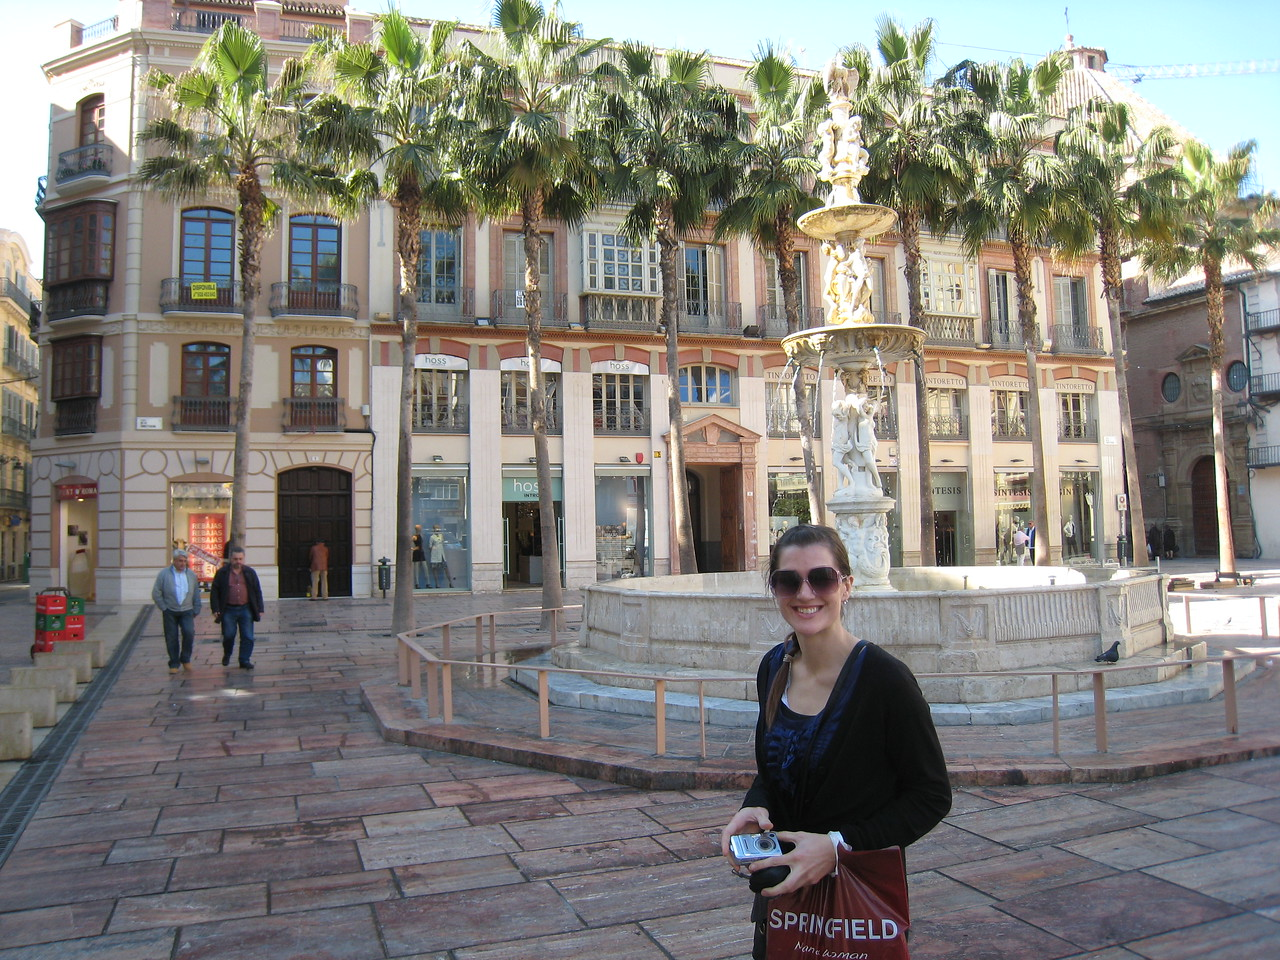 Downtown Malaga is beautiful